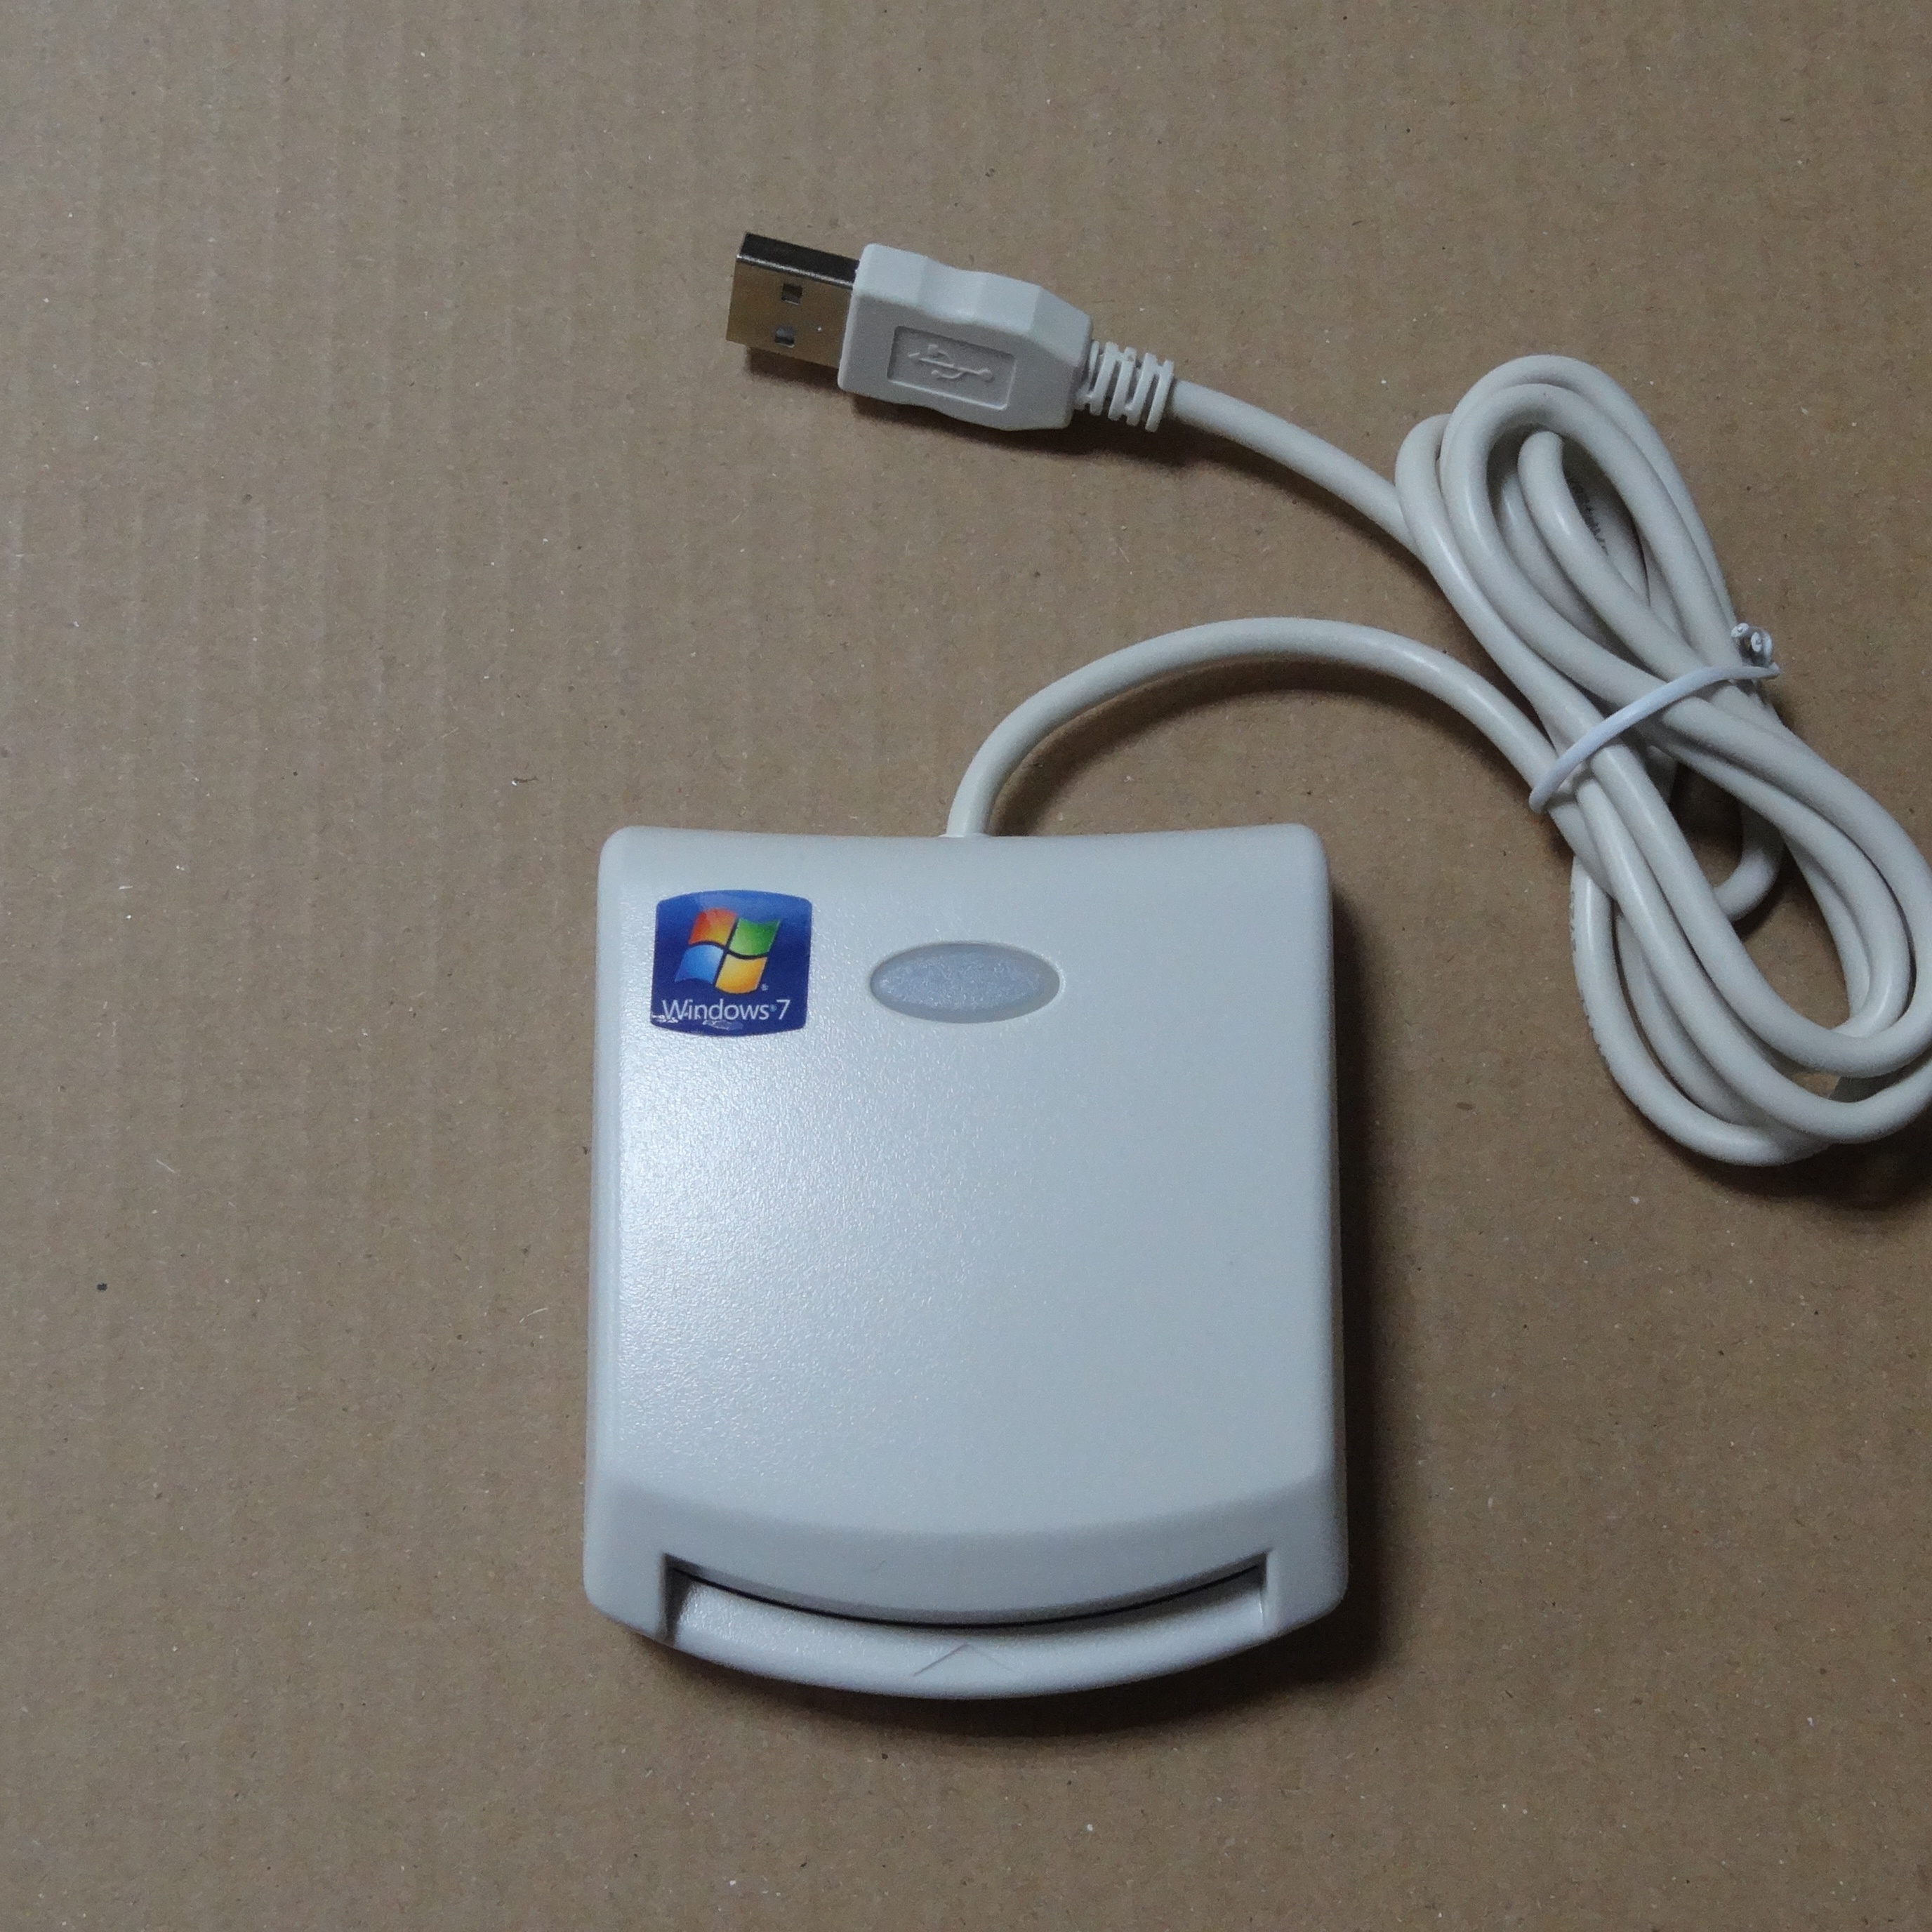 EZ100PU USB IC card reader